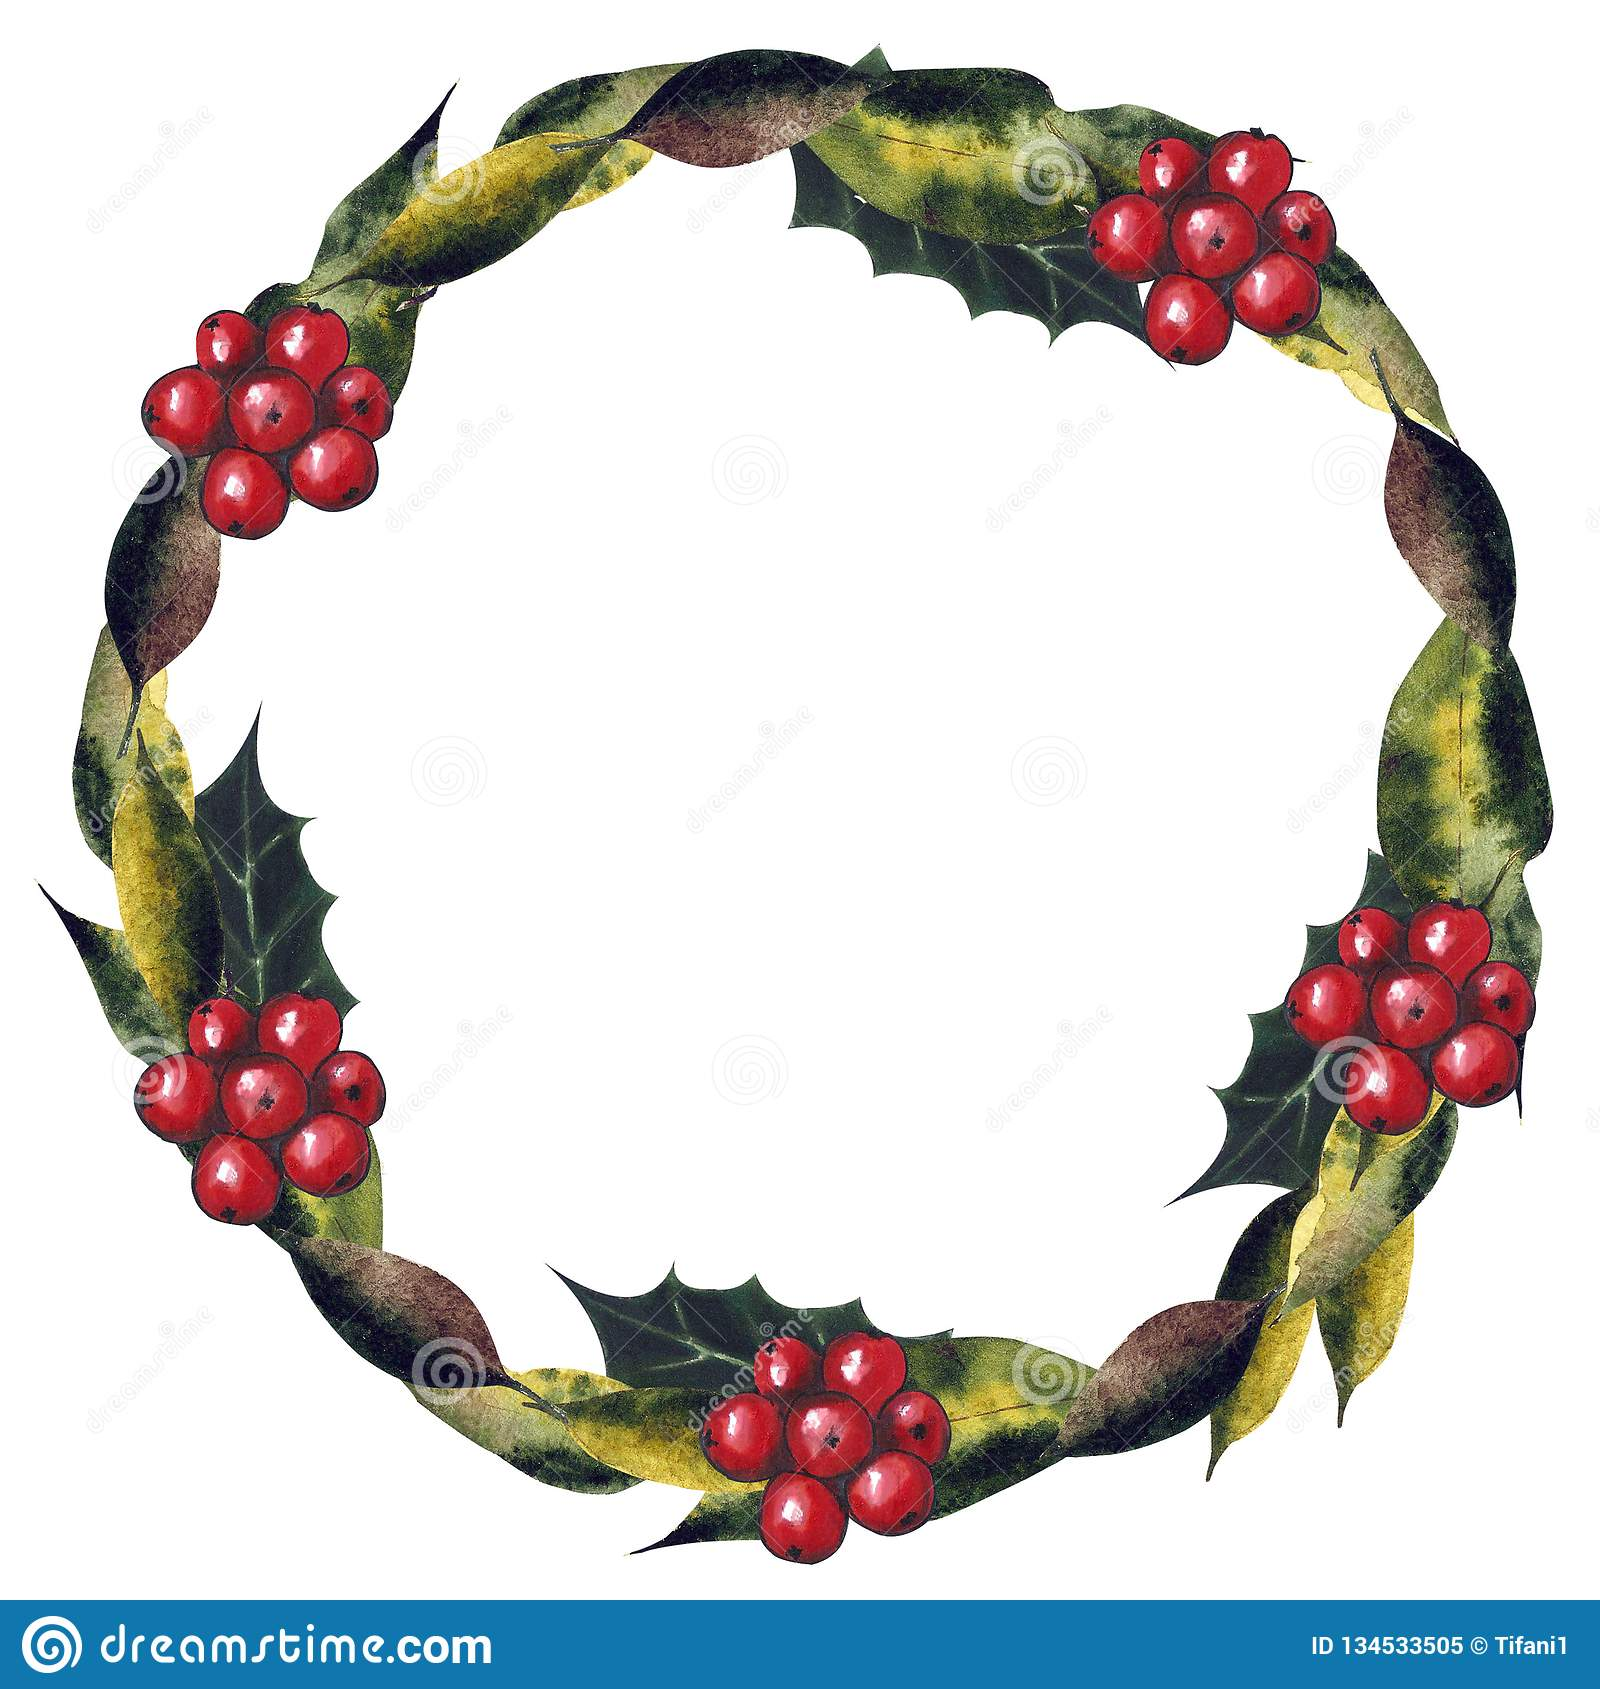 Christmas Wreath Drawing.Christmas Wreath With Berry And Leaves On A White Background